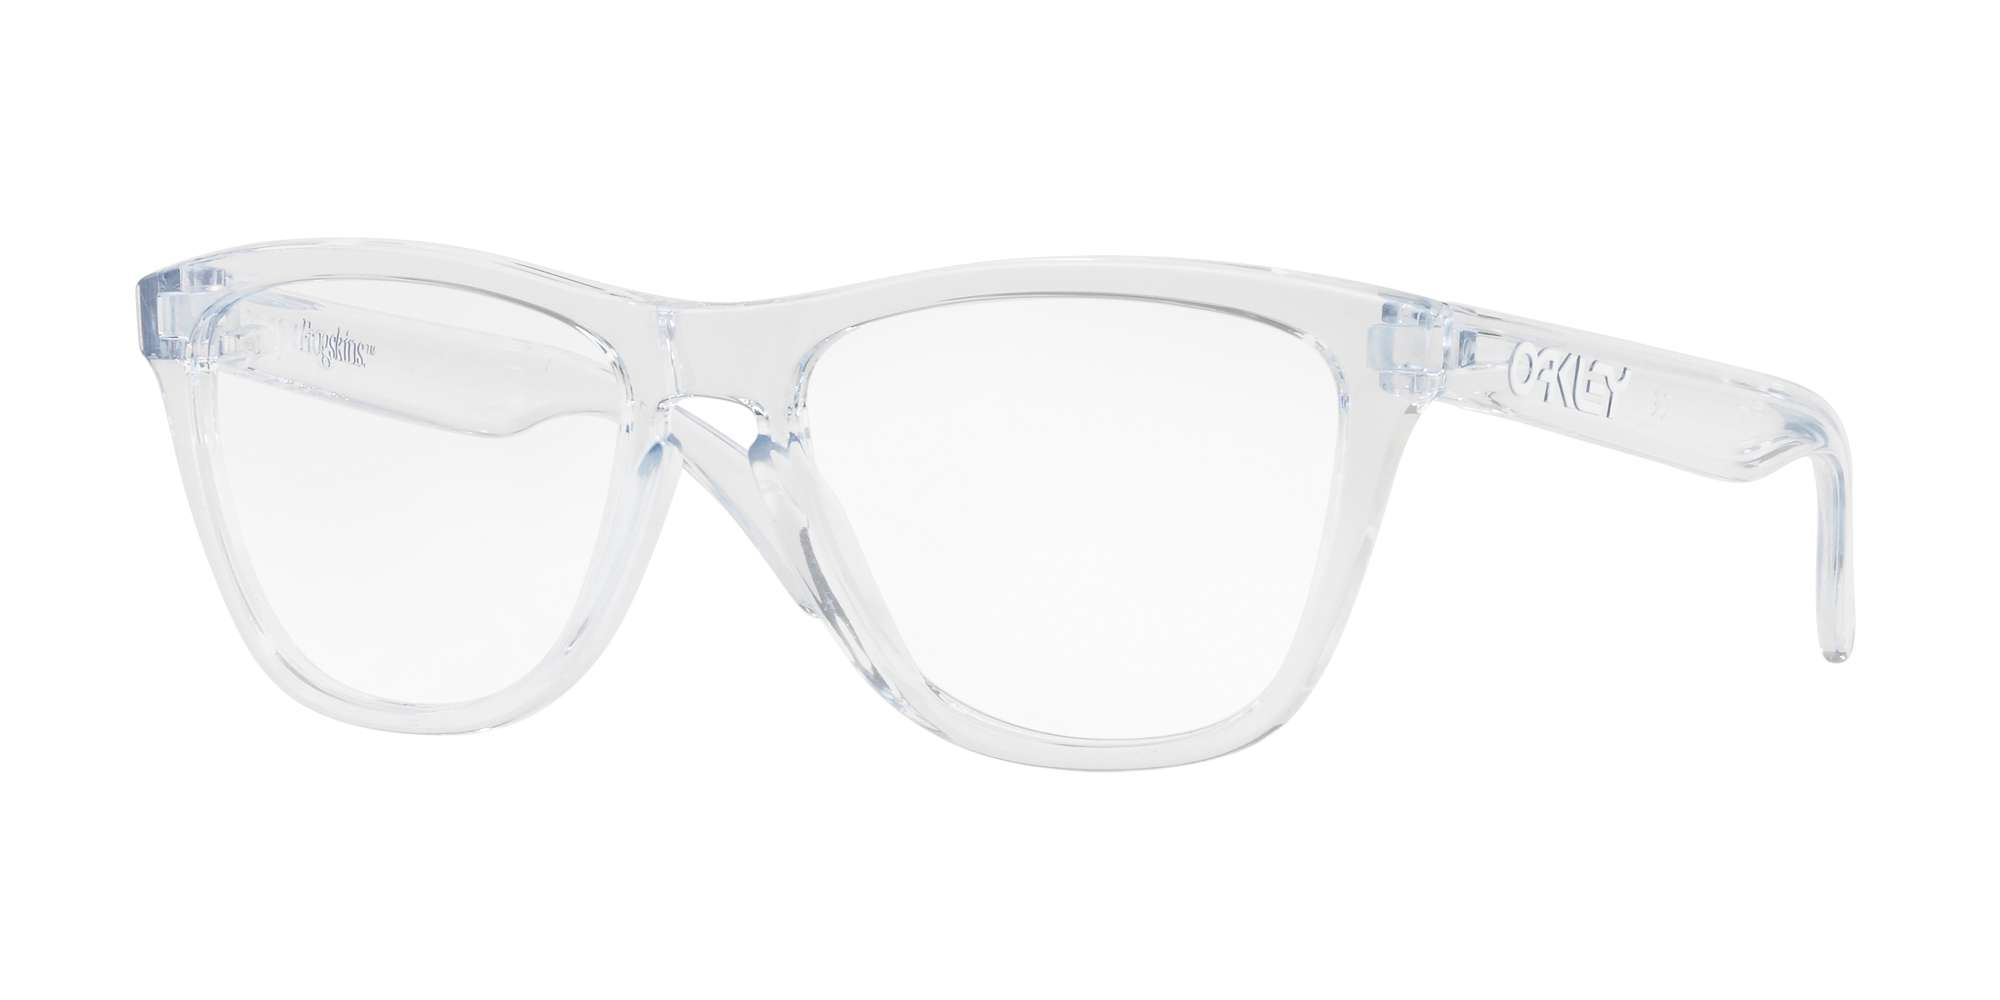 POLISHED CLEAR / CLEAR lenses